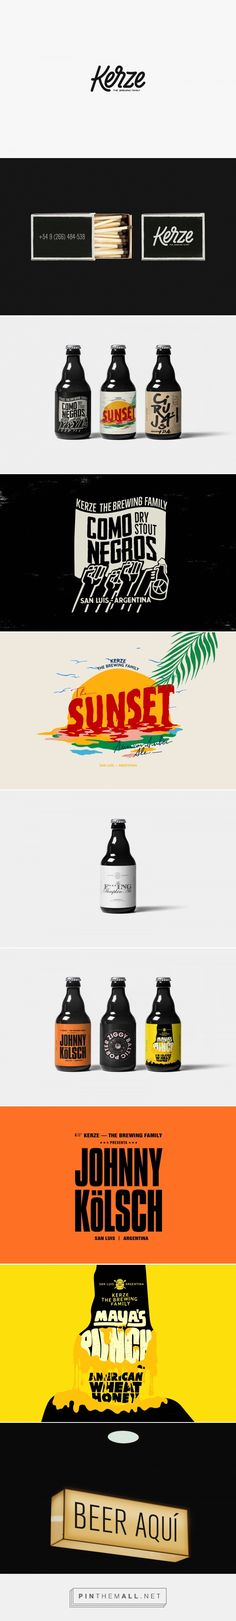 Kerze packaging design by Amateurdotrocks - http://www.packagingoftheworld.com/2017/09/kerze-brewing-family.html